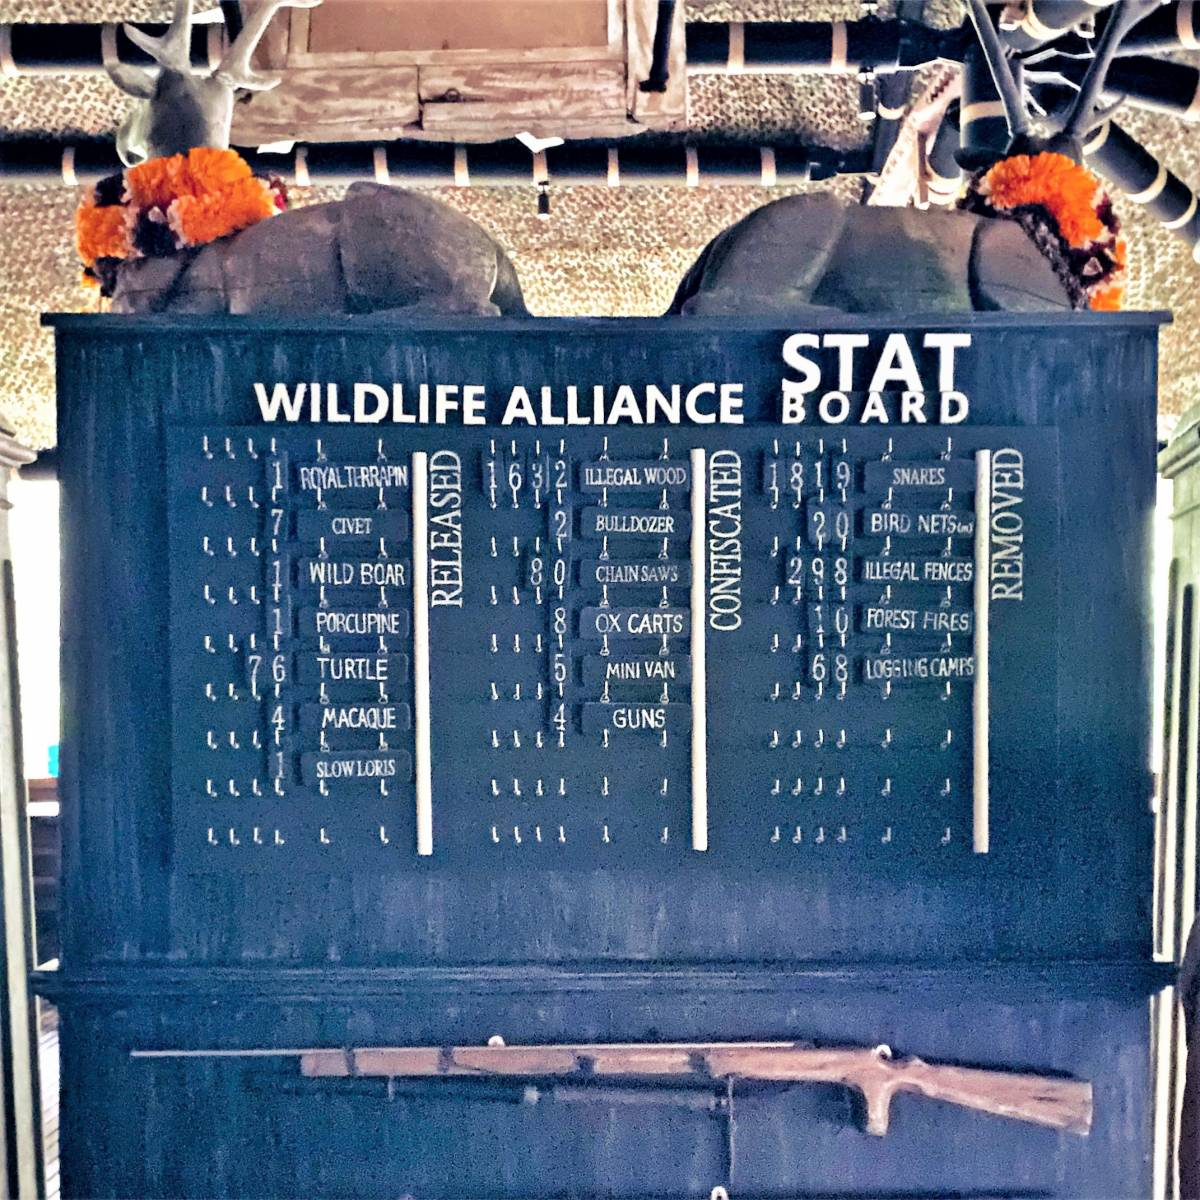 Eco-Warrior Bill Bensley Re-affirms Strong Commitment to Daily Wildlife Alliance Patrols at Shinta Mani Wild Despite Temporary Closure